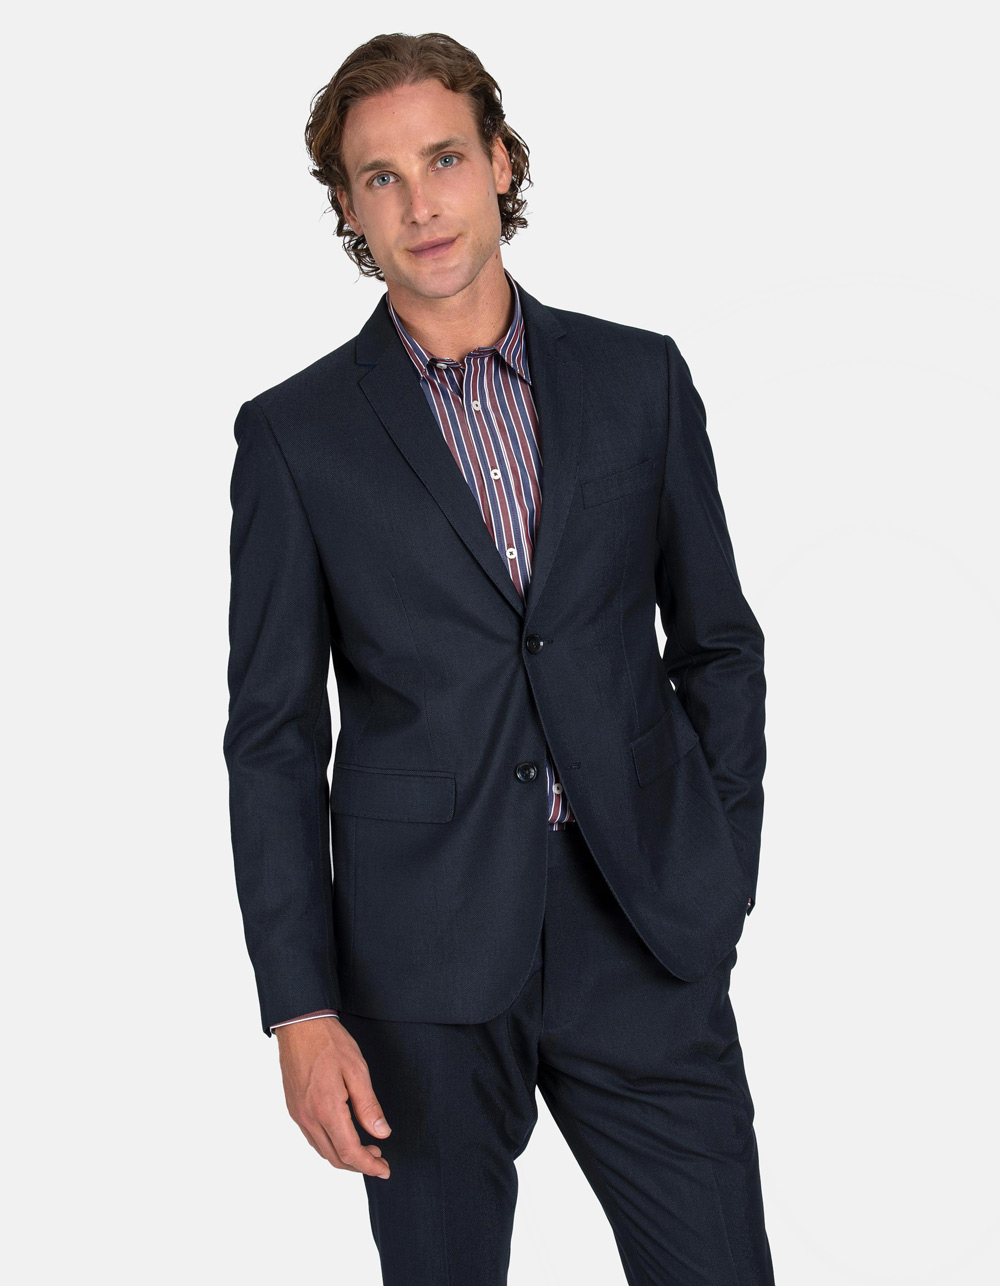 Black Oxford suit